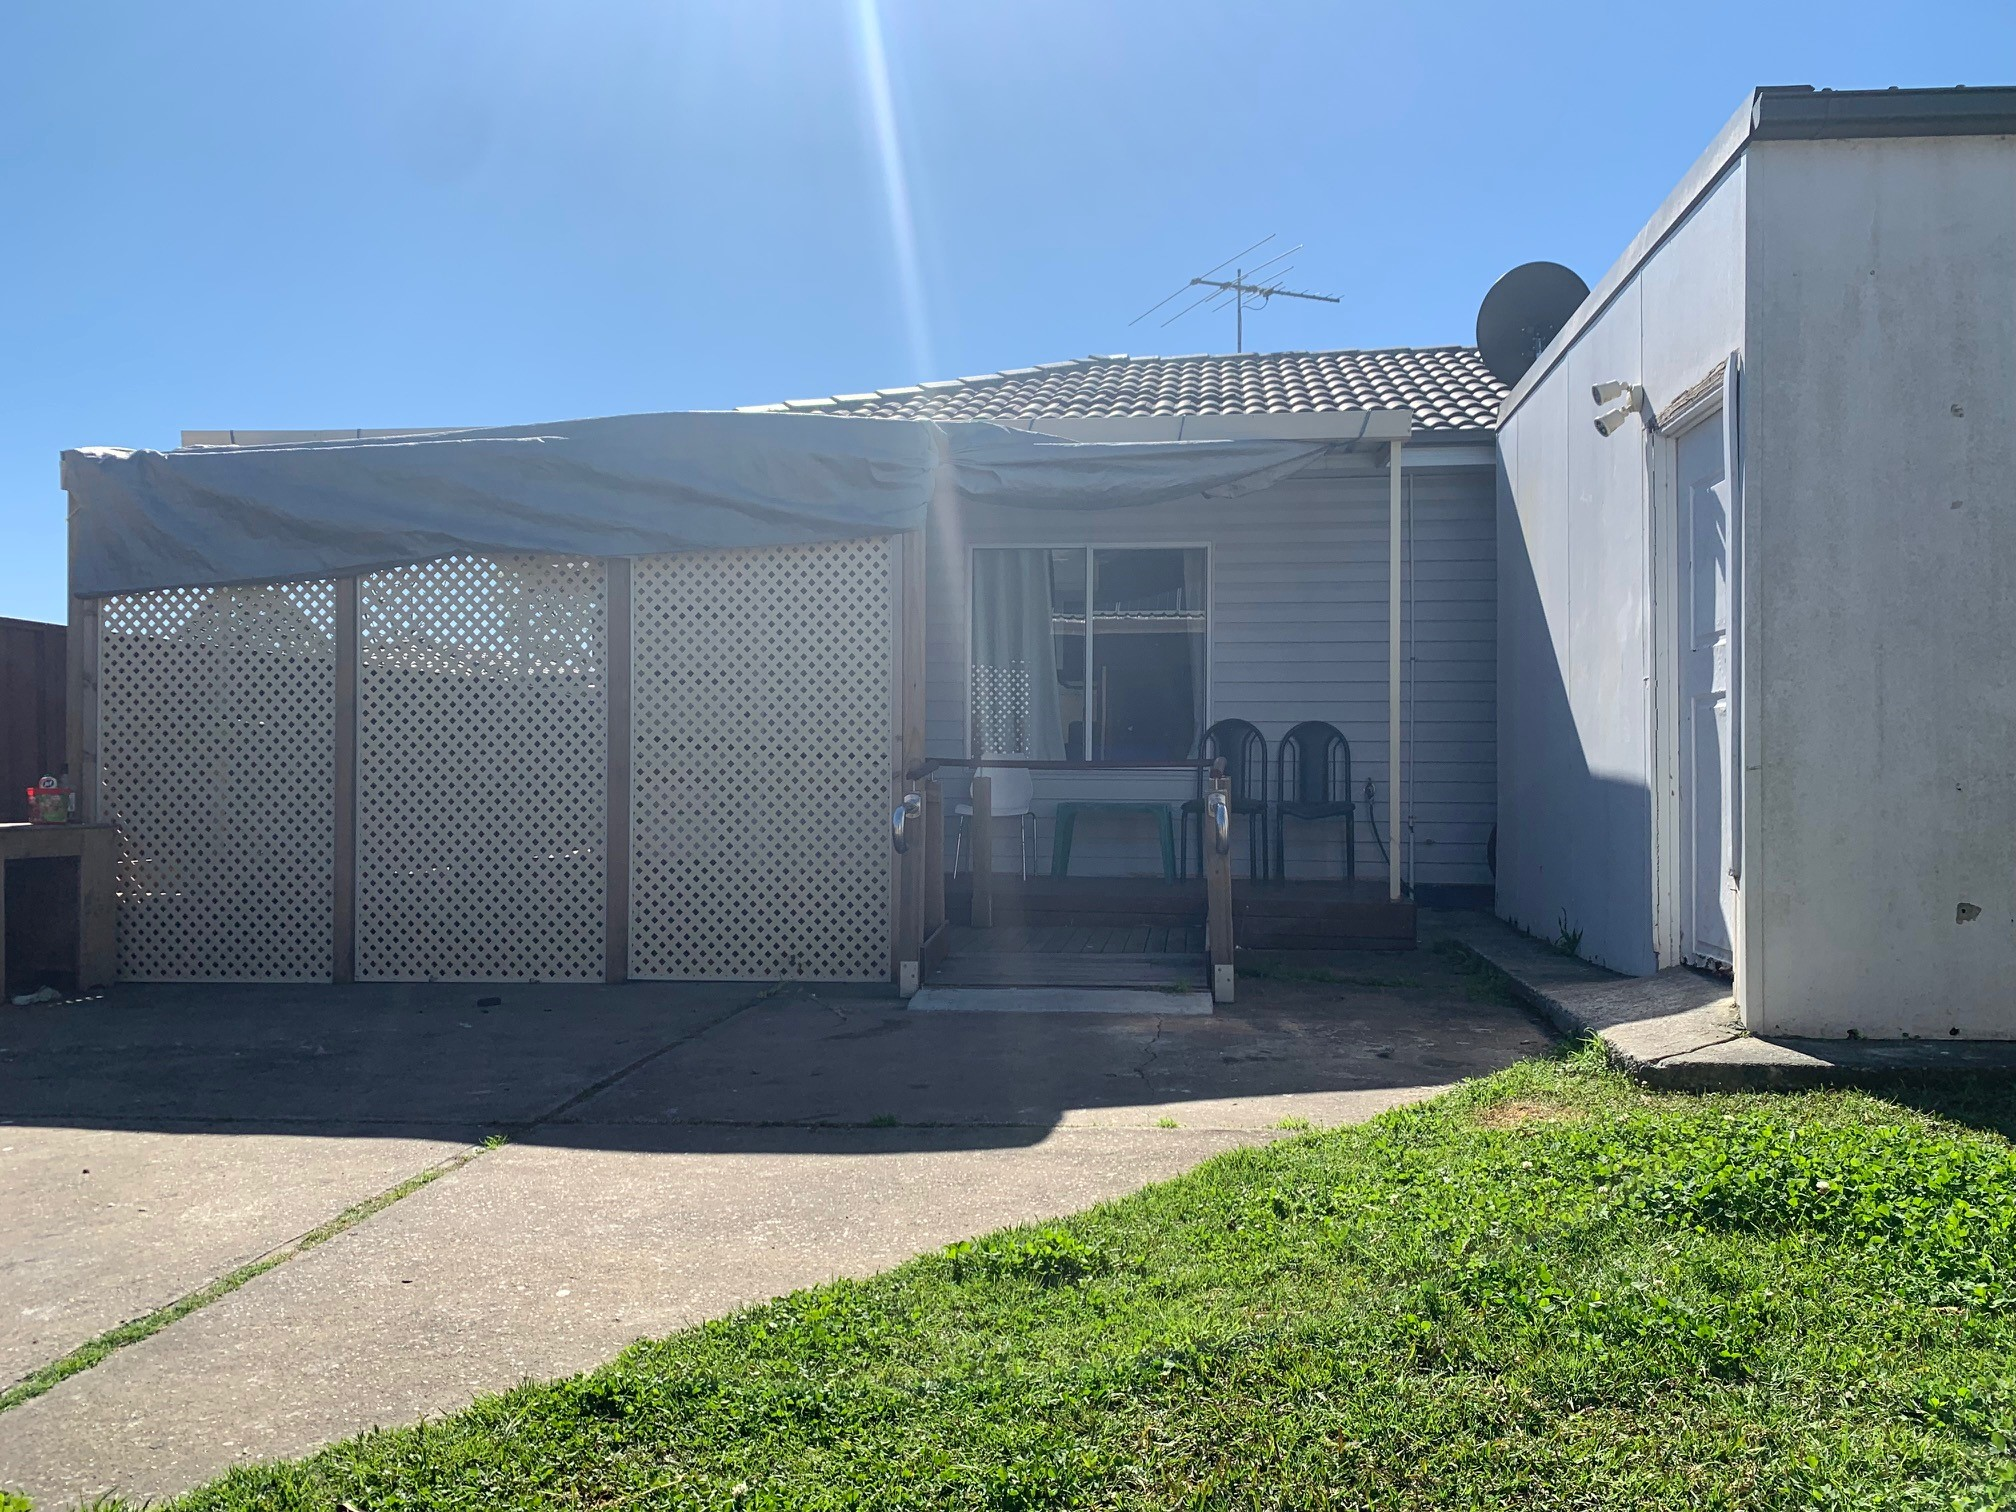 2 BEDROOM GRANNY FLAT FOR LEASE ALL BILLS INCLUDED